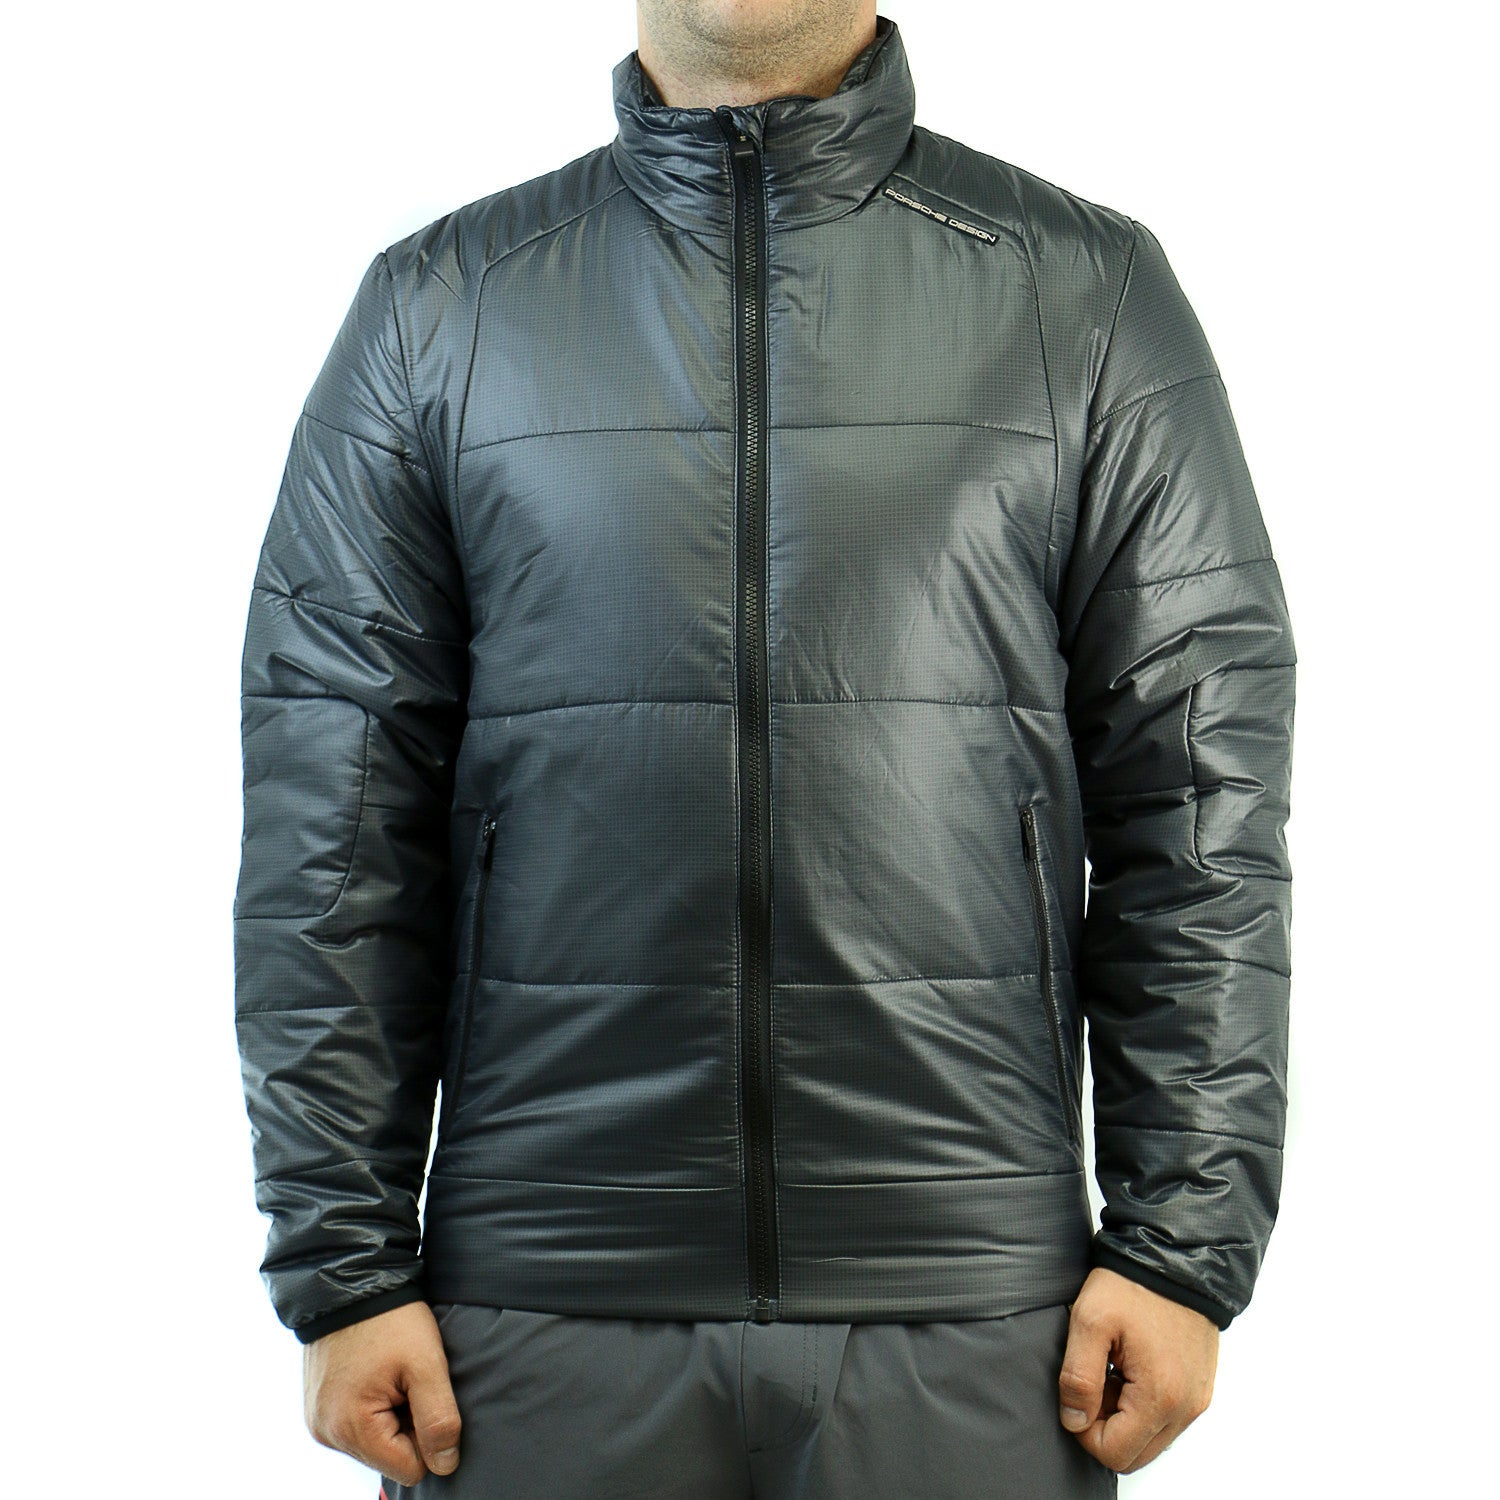 b241b193e Adidas Porsche Design M Isolation Insulated Sport Jacket - Black - Mens